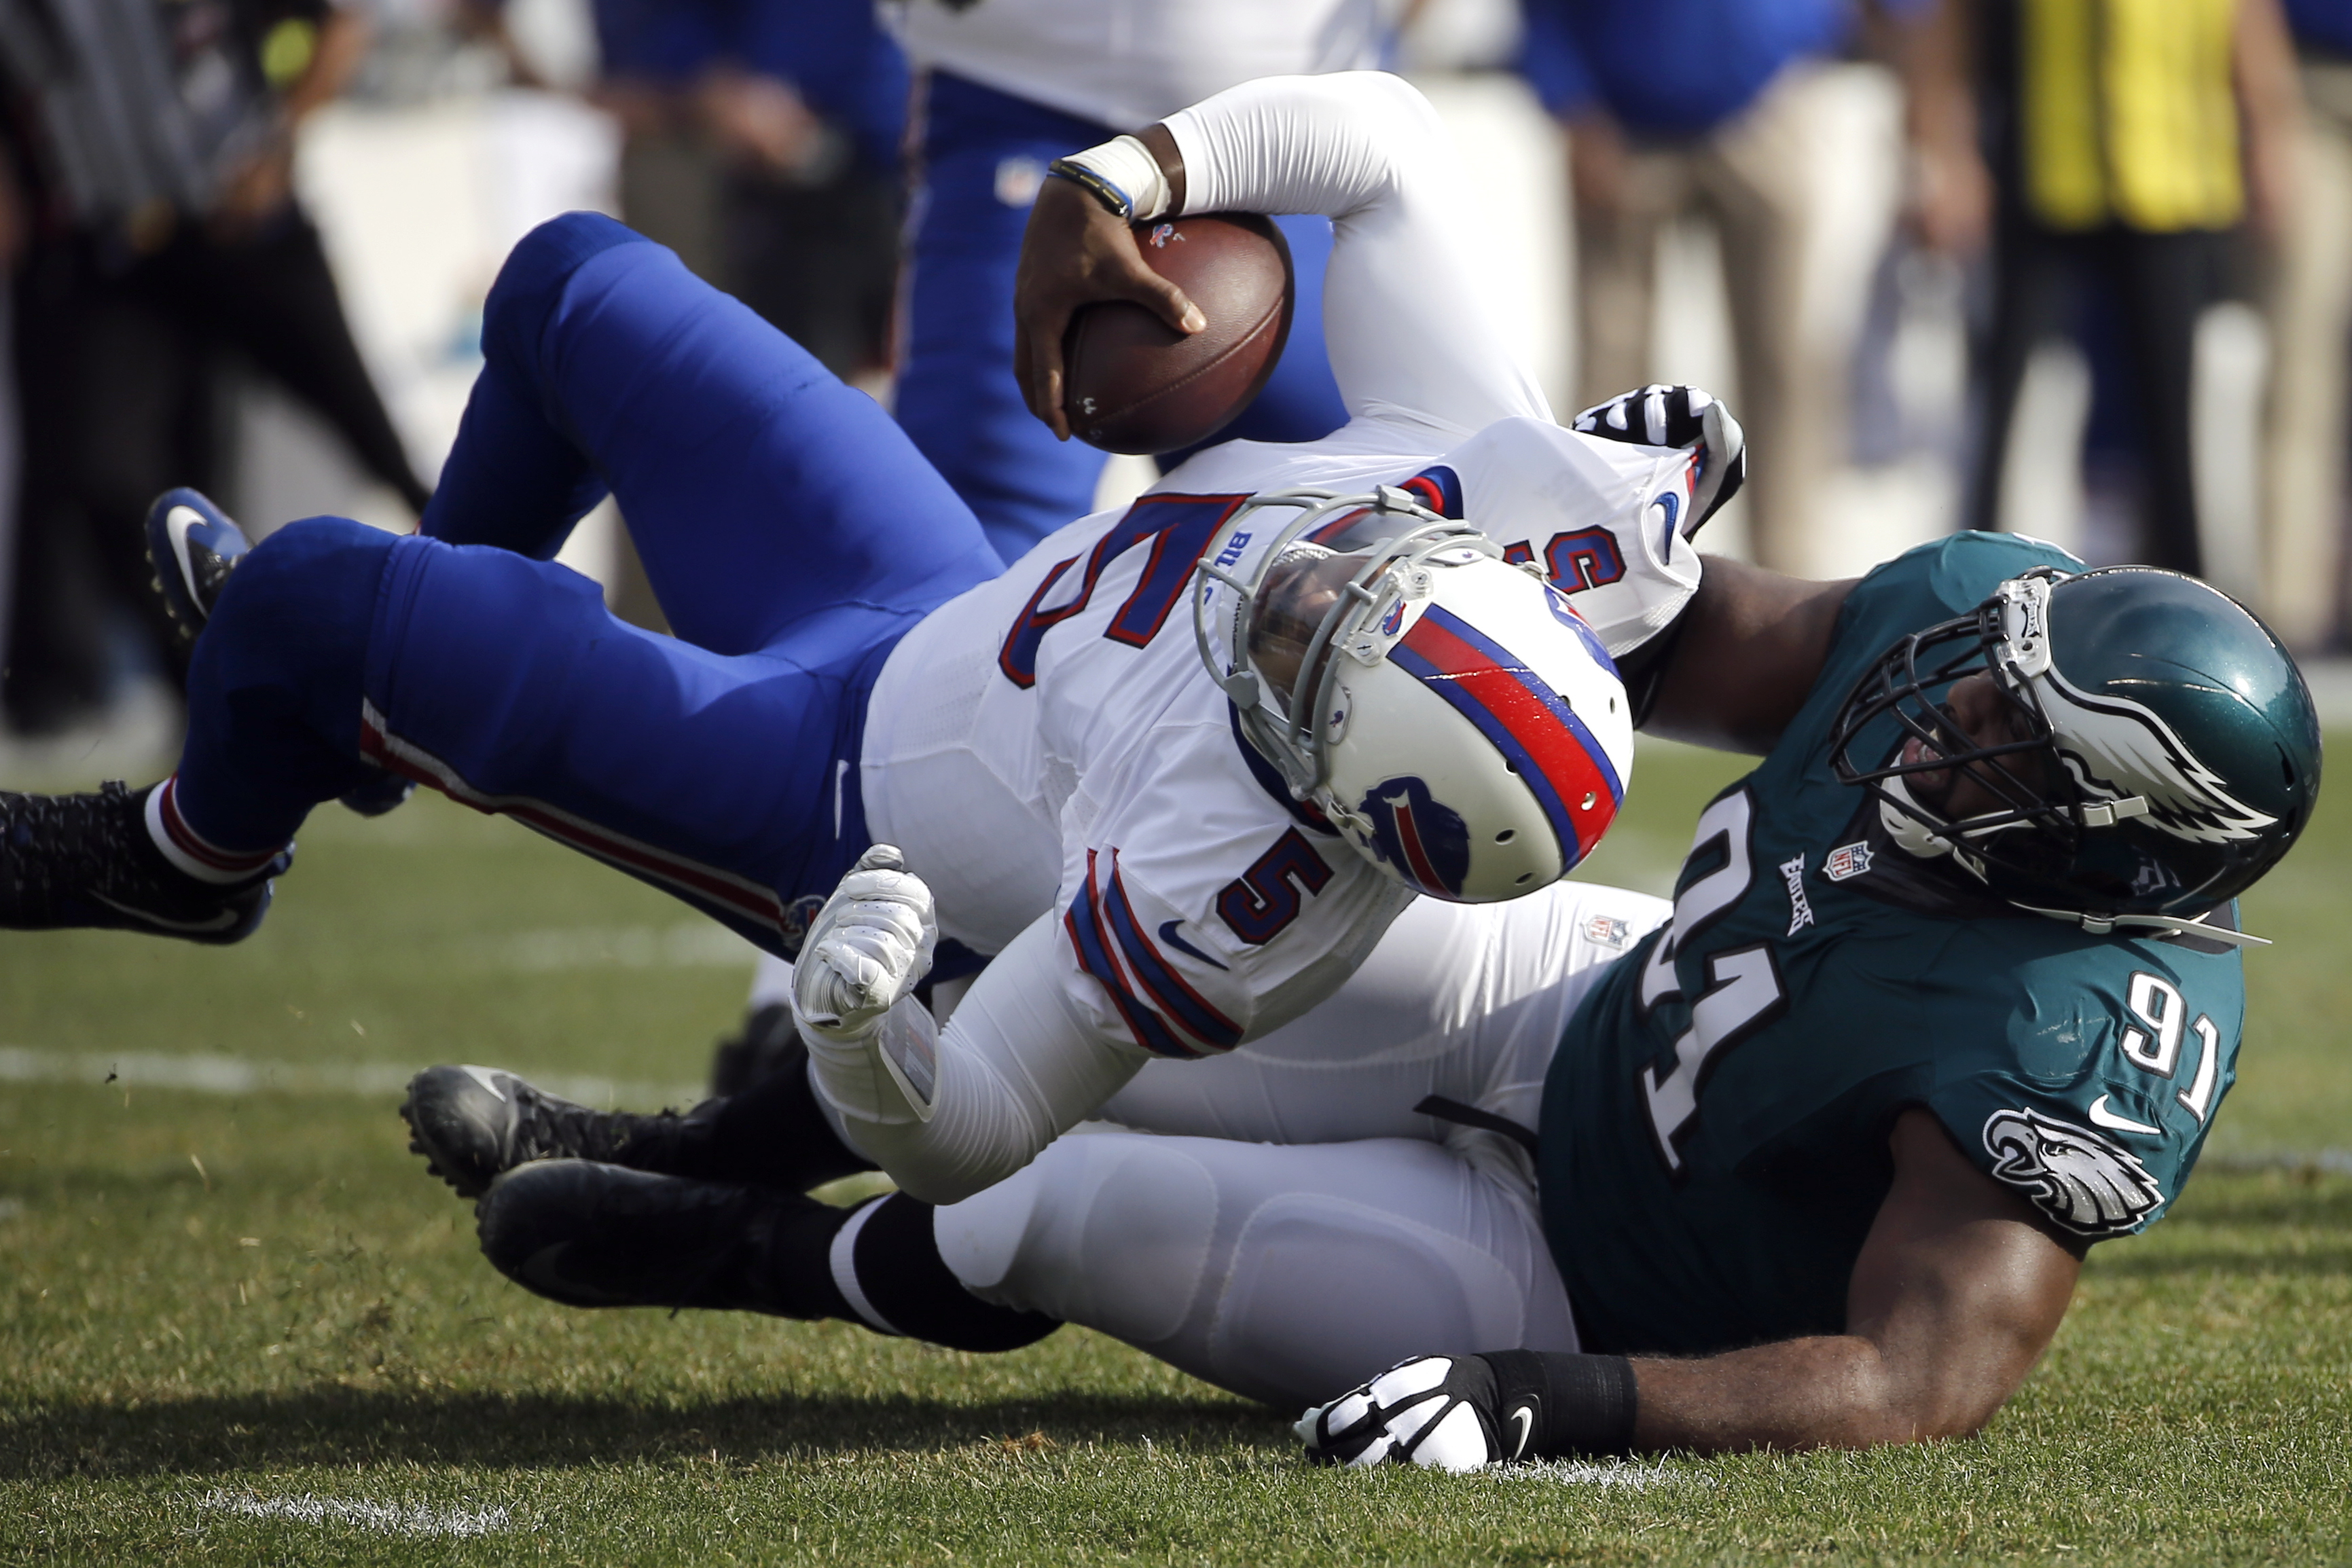 Buffalo Bills' Tyrod Taylor (5) is sacked by Philadelphia Eagles' Fletcher Cox (91) during the first half of an NFL football game, Sunday, Dec. 13, 2015, in Philadelphia. (AP Photo/Michael Perez)